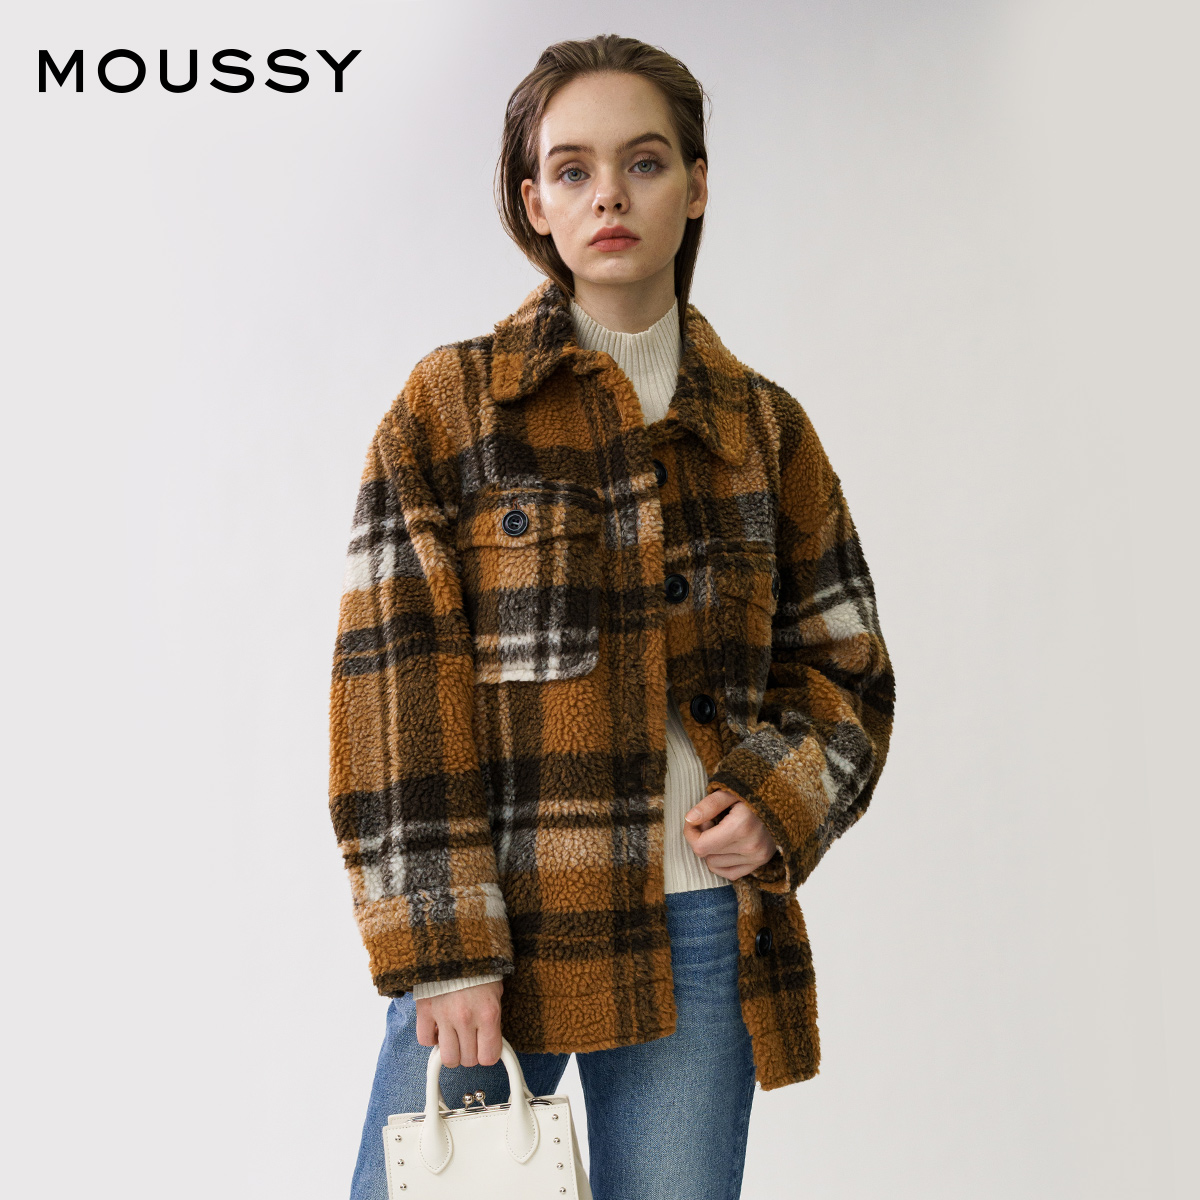 MOUSSY 2020 winter new product lapel fleece check casual jacket coat 028DAE30-5130